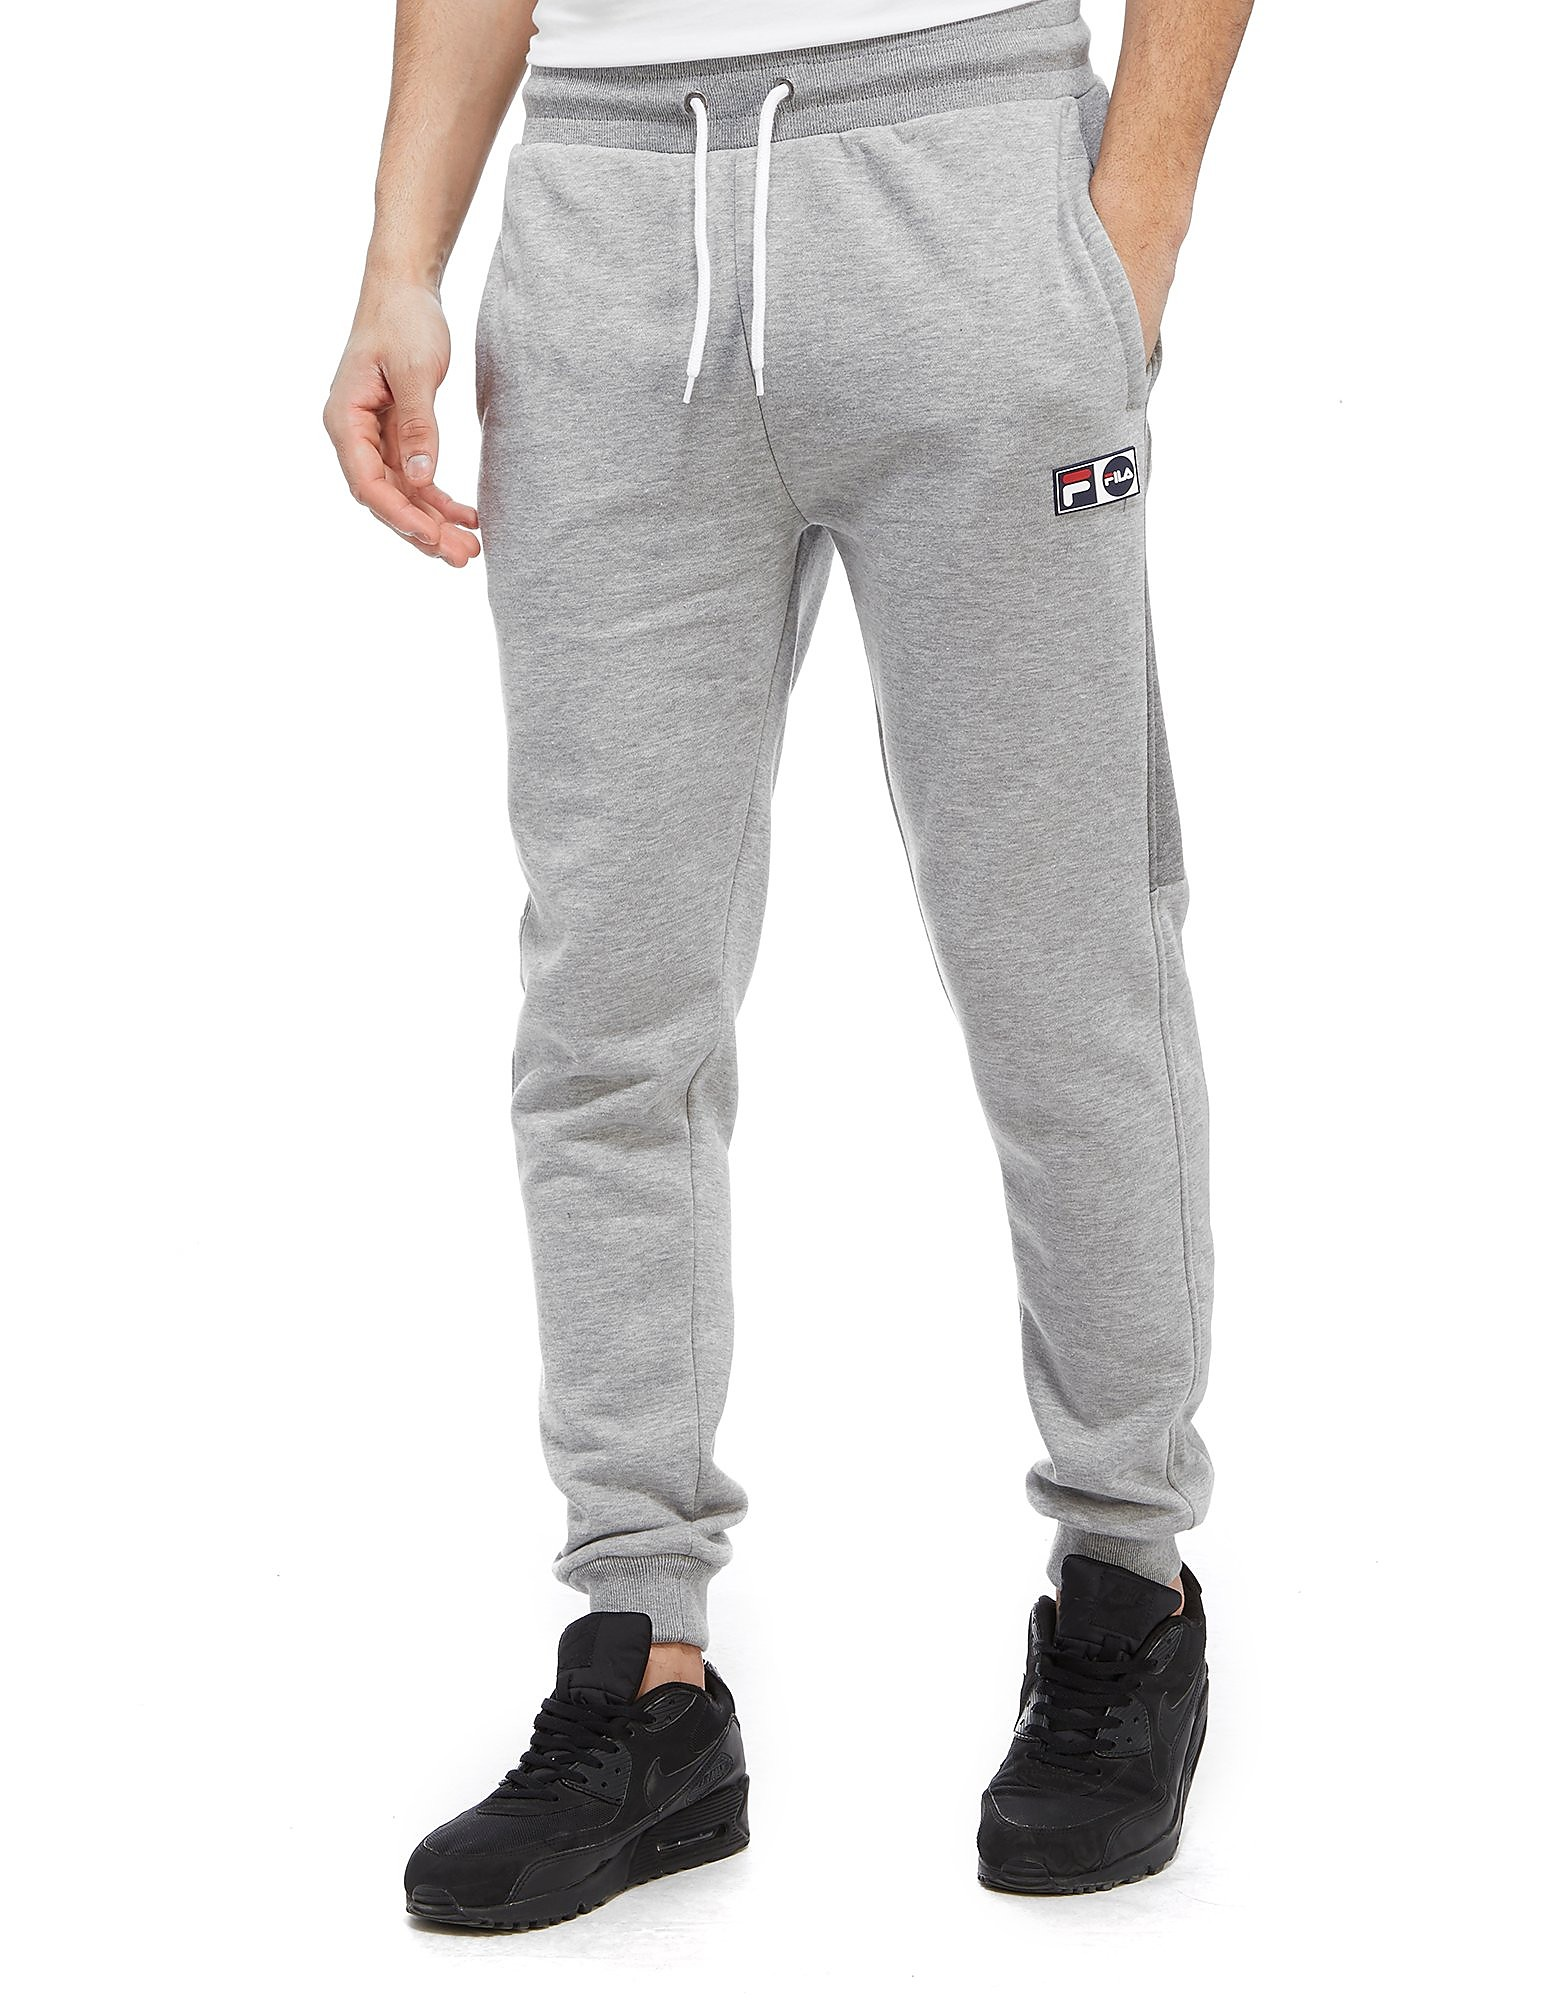 Fila Fosteroni Fleece Pants